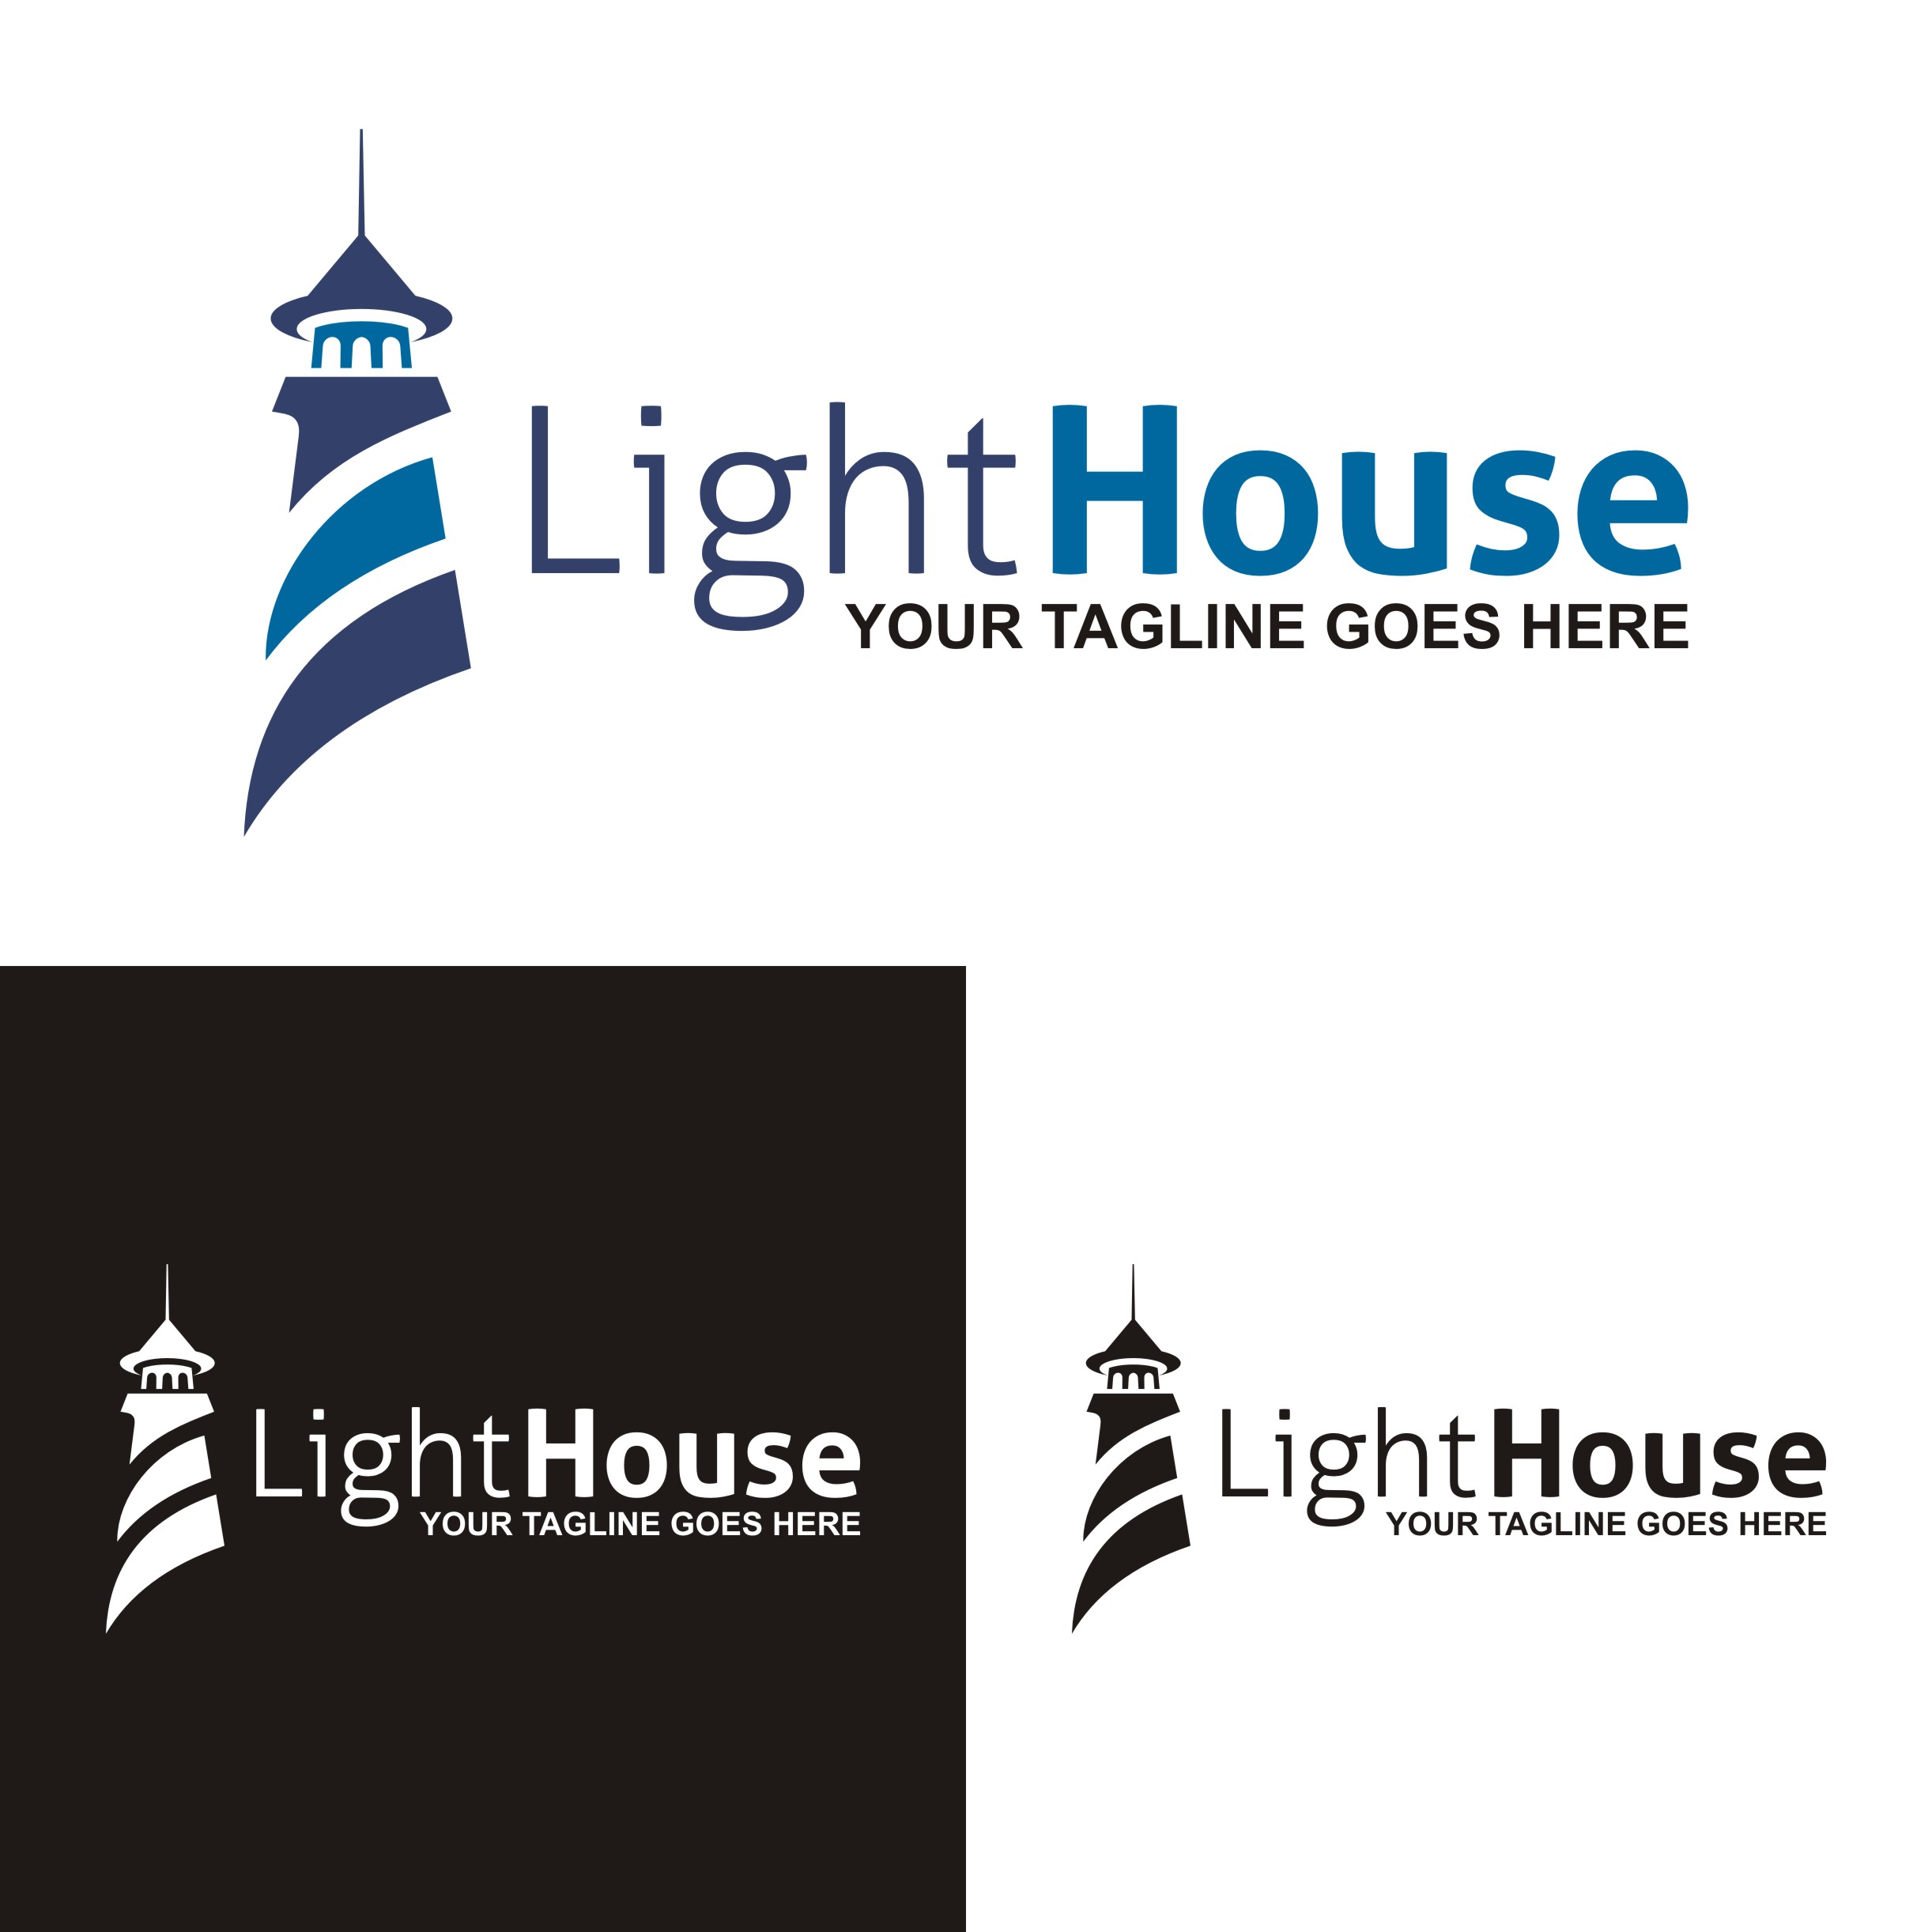 lighthouse logo design concept template  Download Free